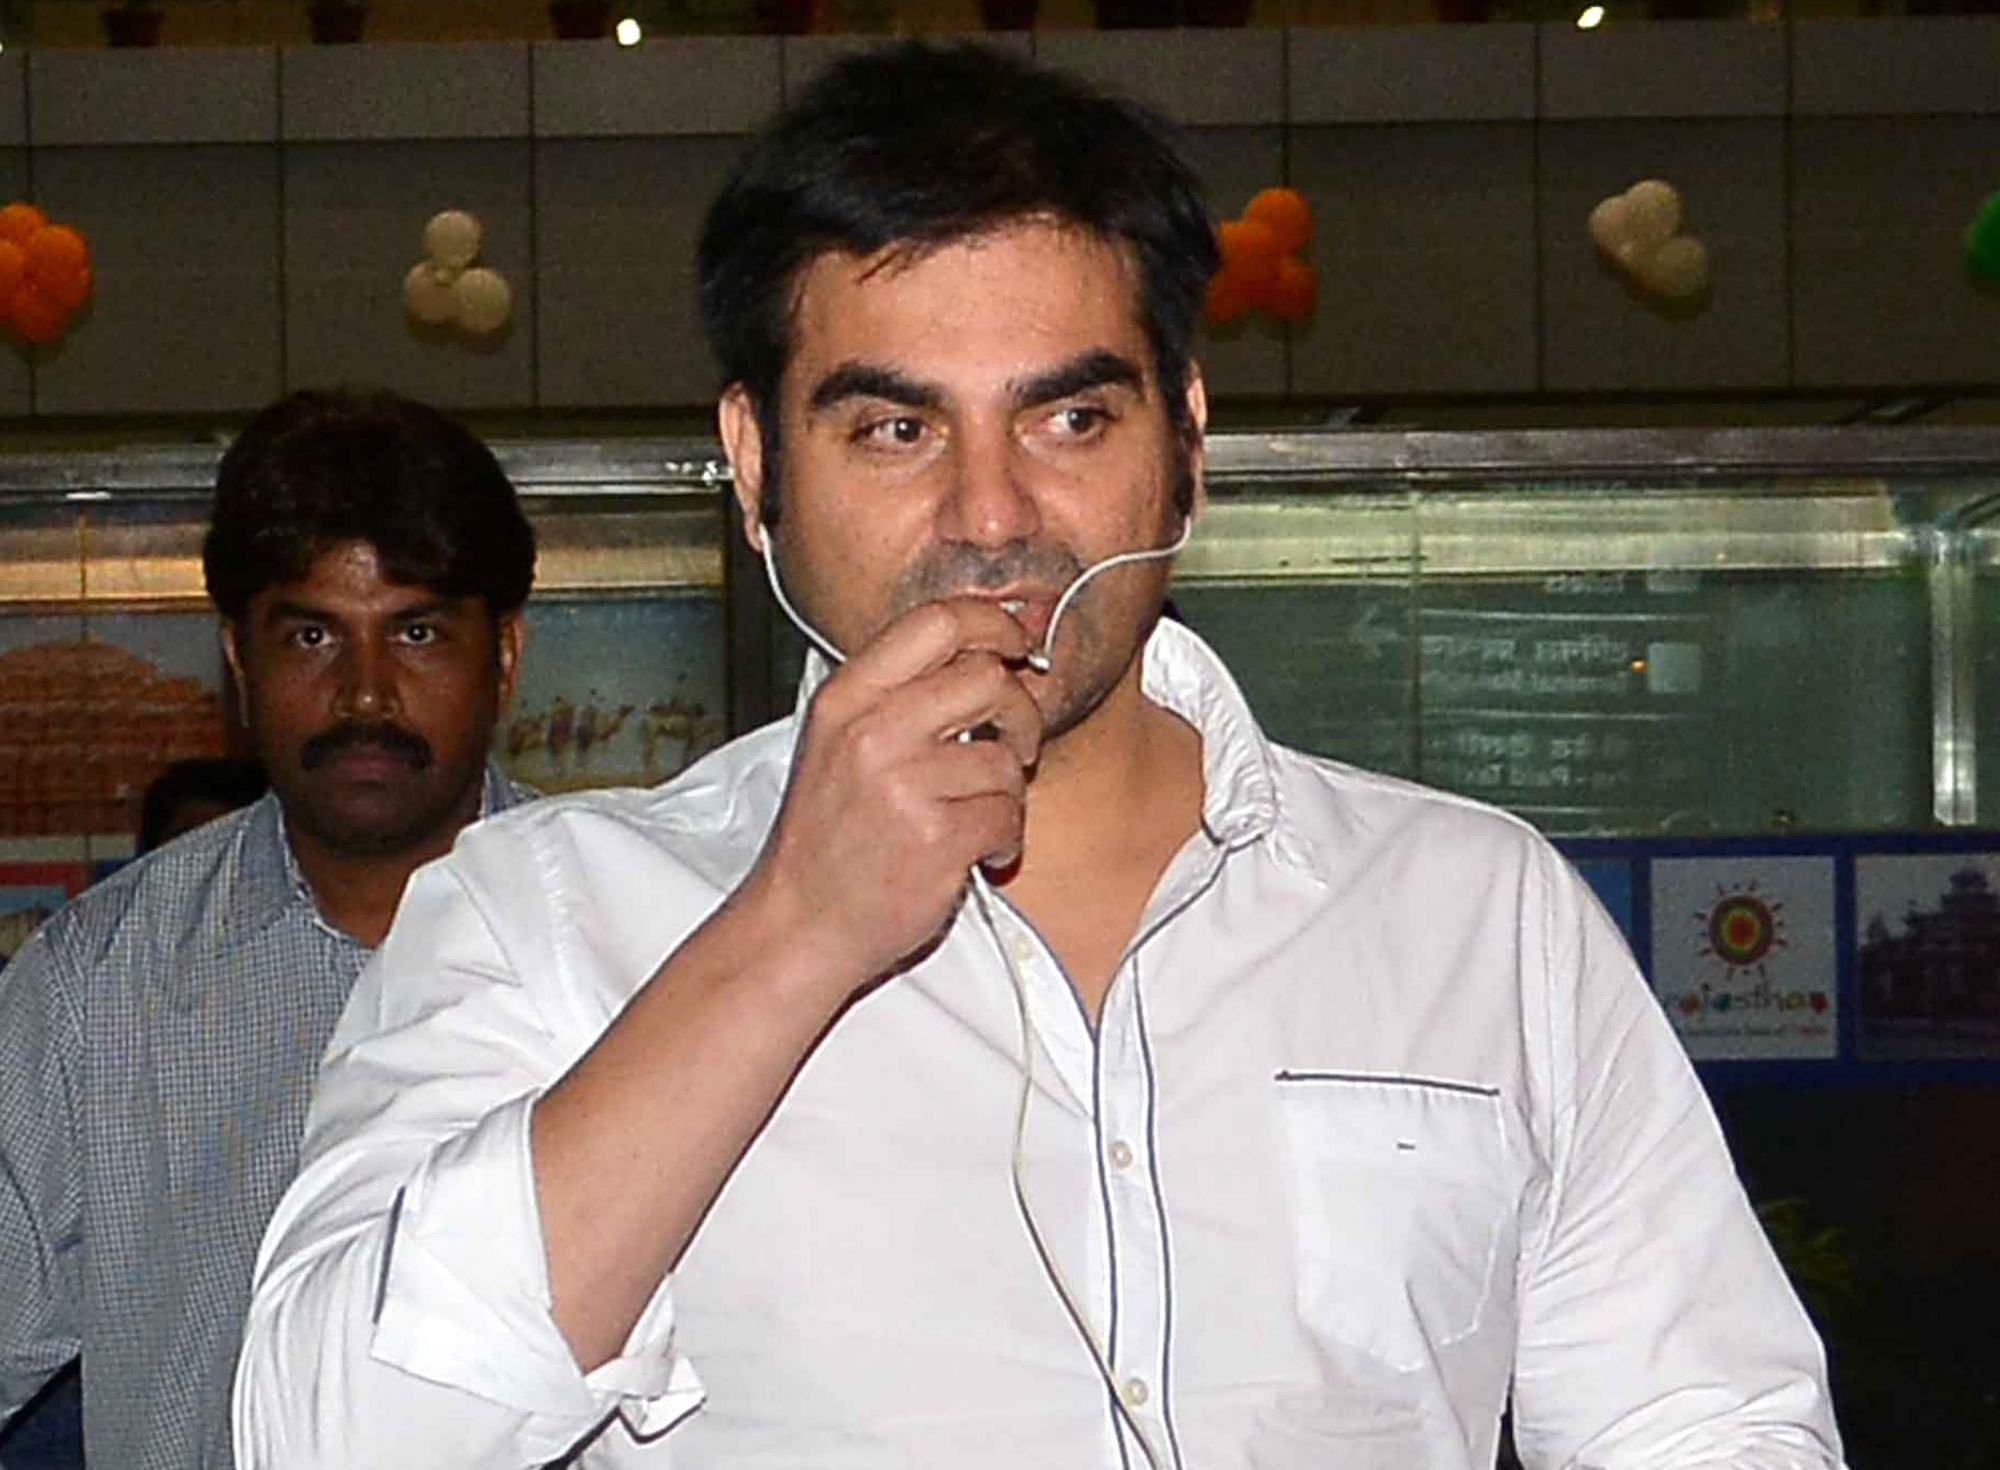 Arbaaz Khan summoned by police in IPL betting scam